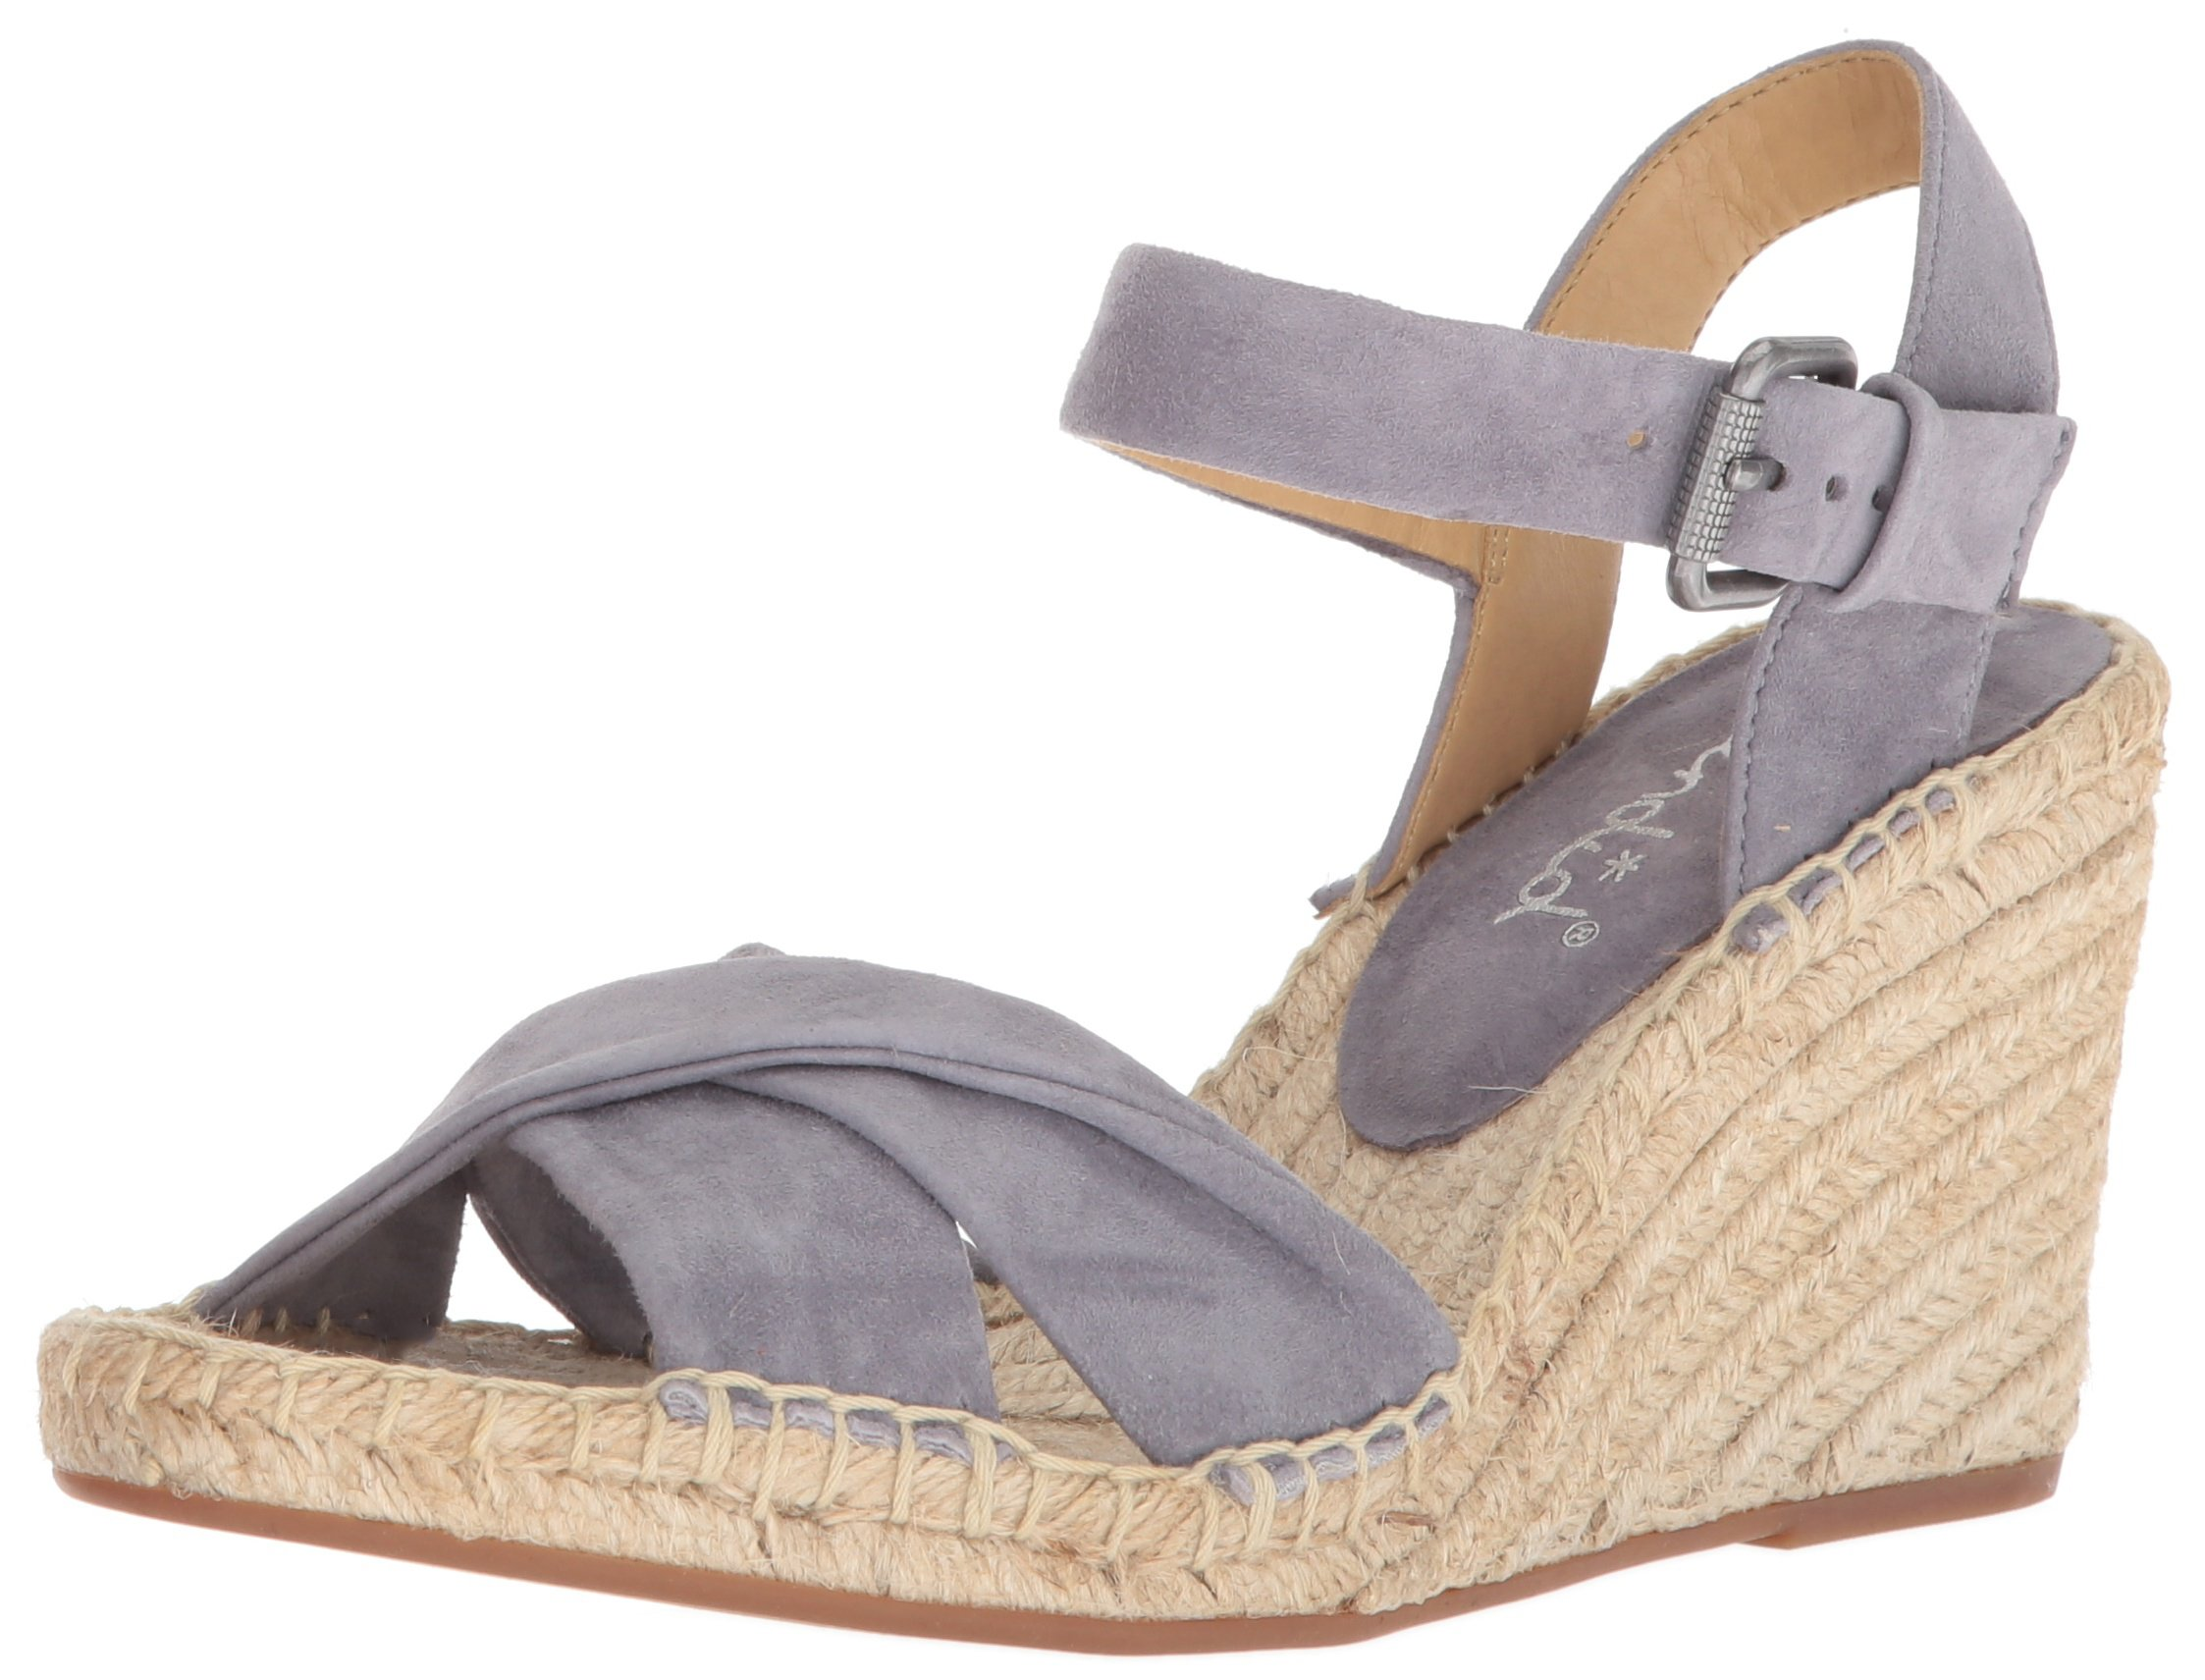 Splendid Women's Fairfax Espadrille Wedge Sandal, Grey, 8 Medium US